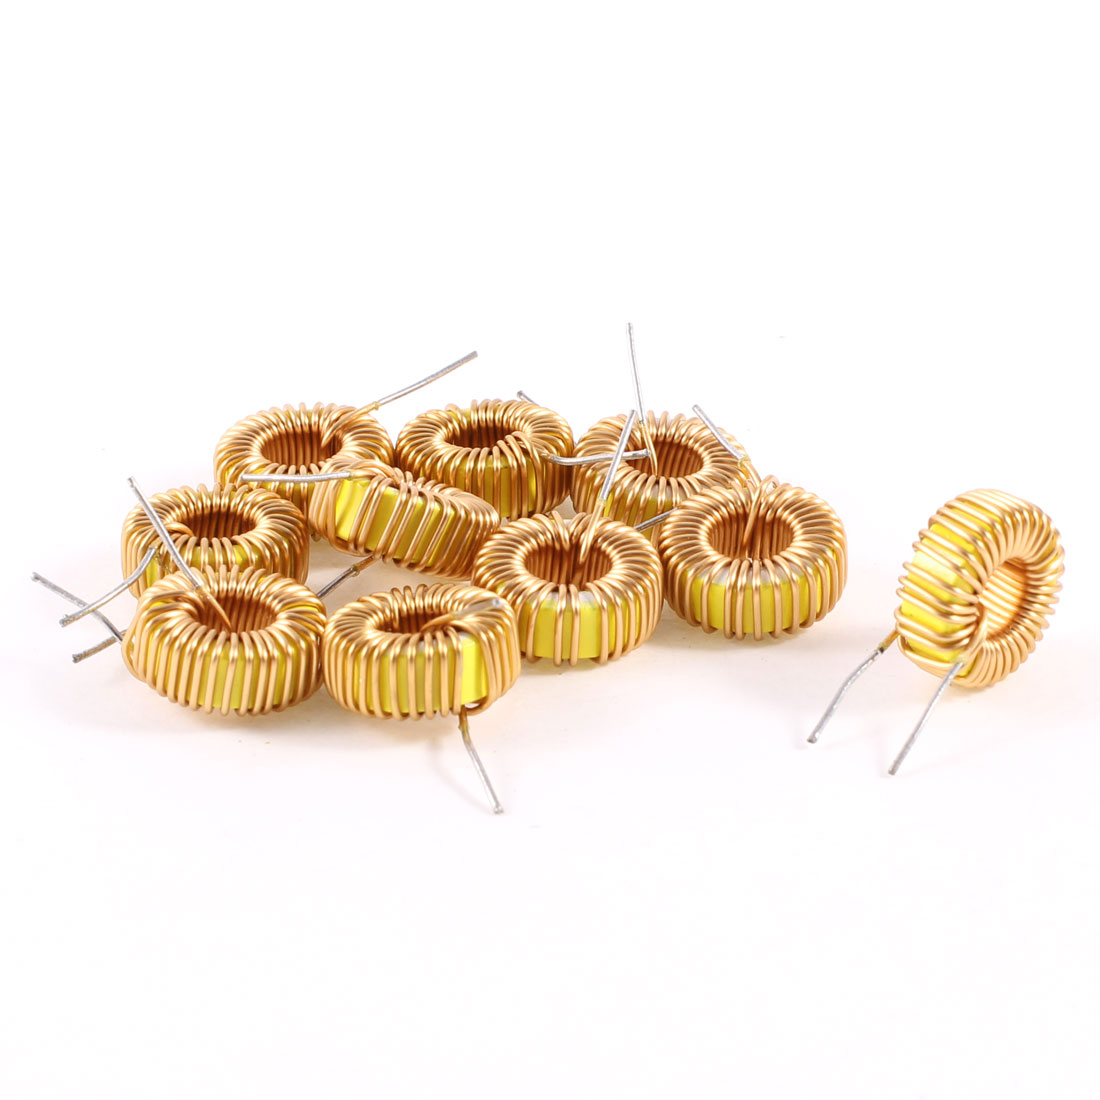 10 Pcs Toroid Core Inductor Wire Wind Wound 47uH 38mOhm 3A Coil